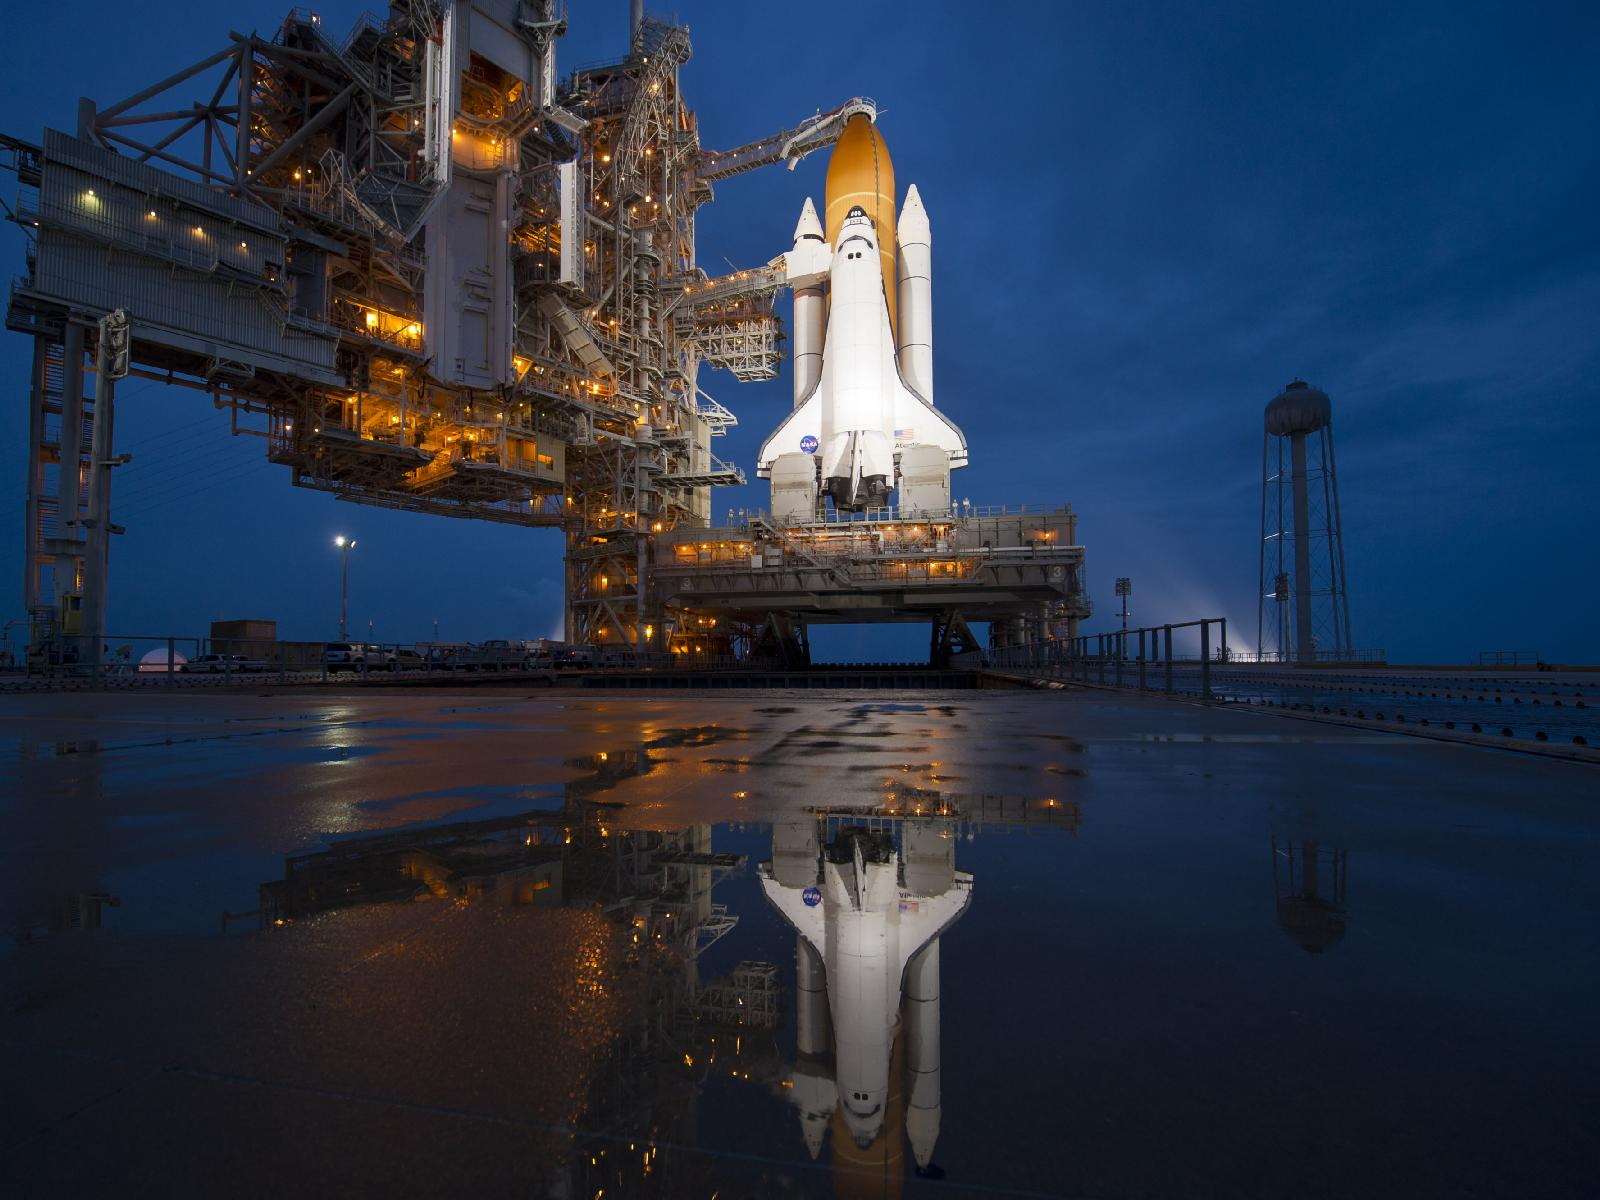 Shuttle Atlantis launch pad reflection